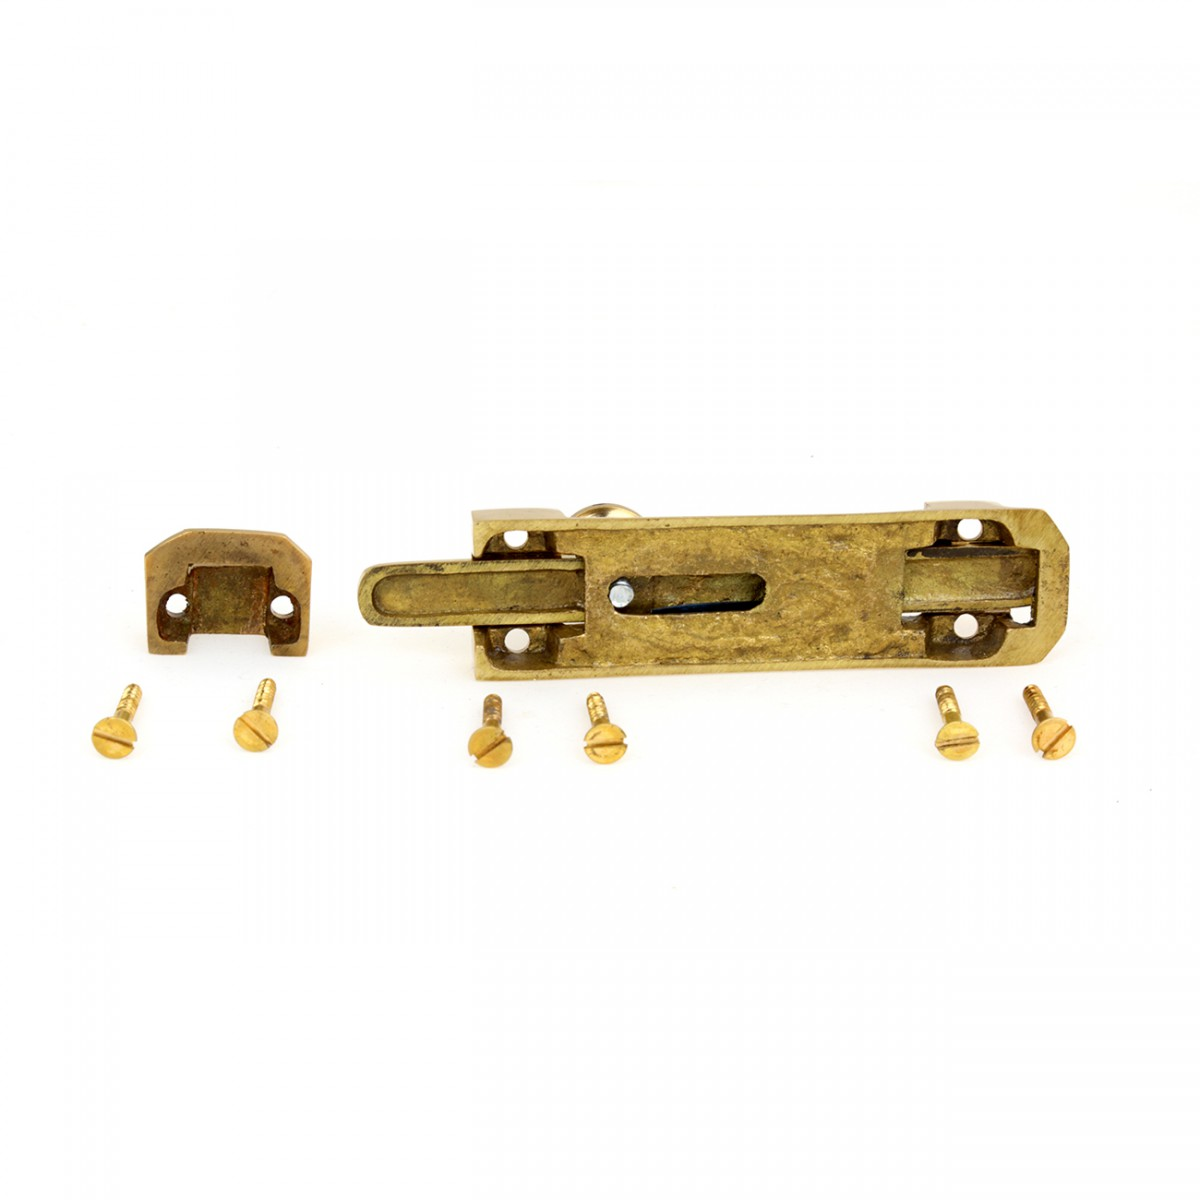 4 Brass Casted Door Slide Bolt Brass Slide Bolt Slide Lock For Door Gold Slide Latch Lock